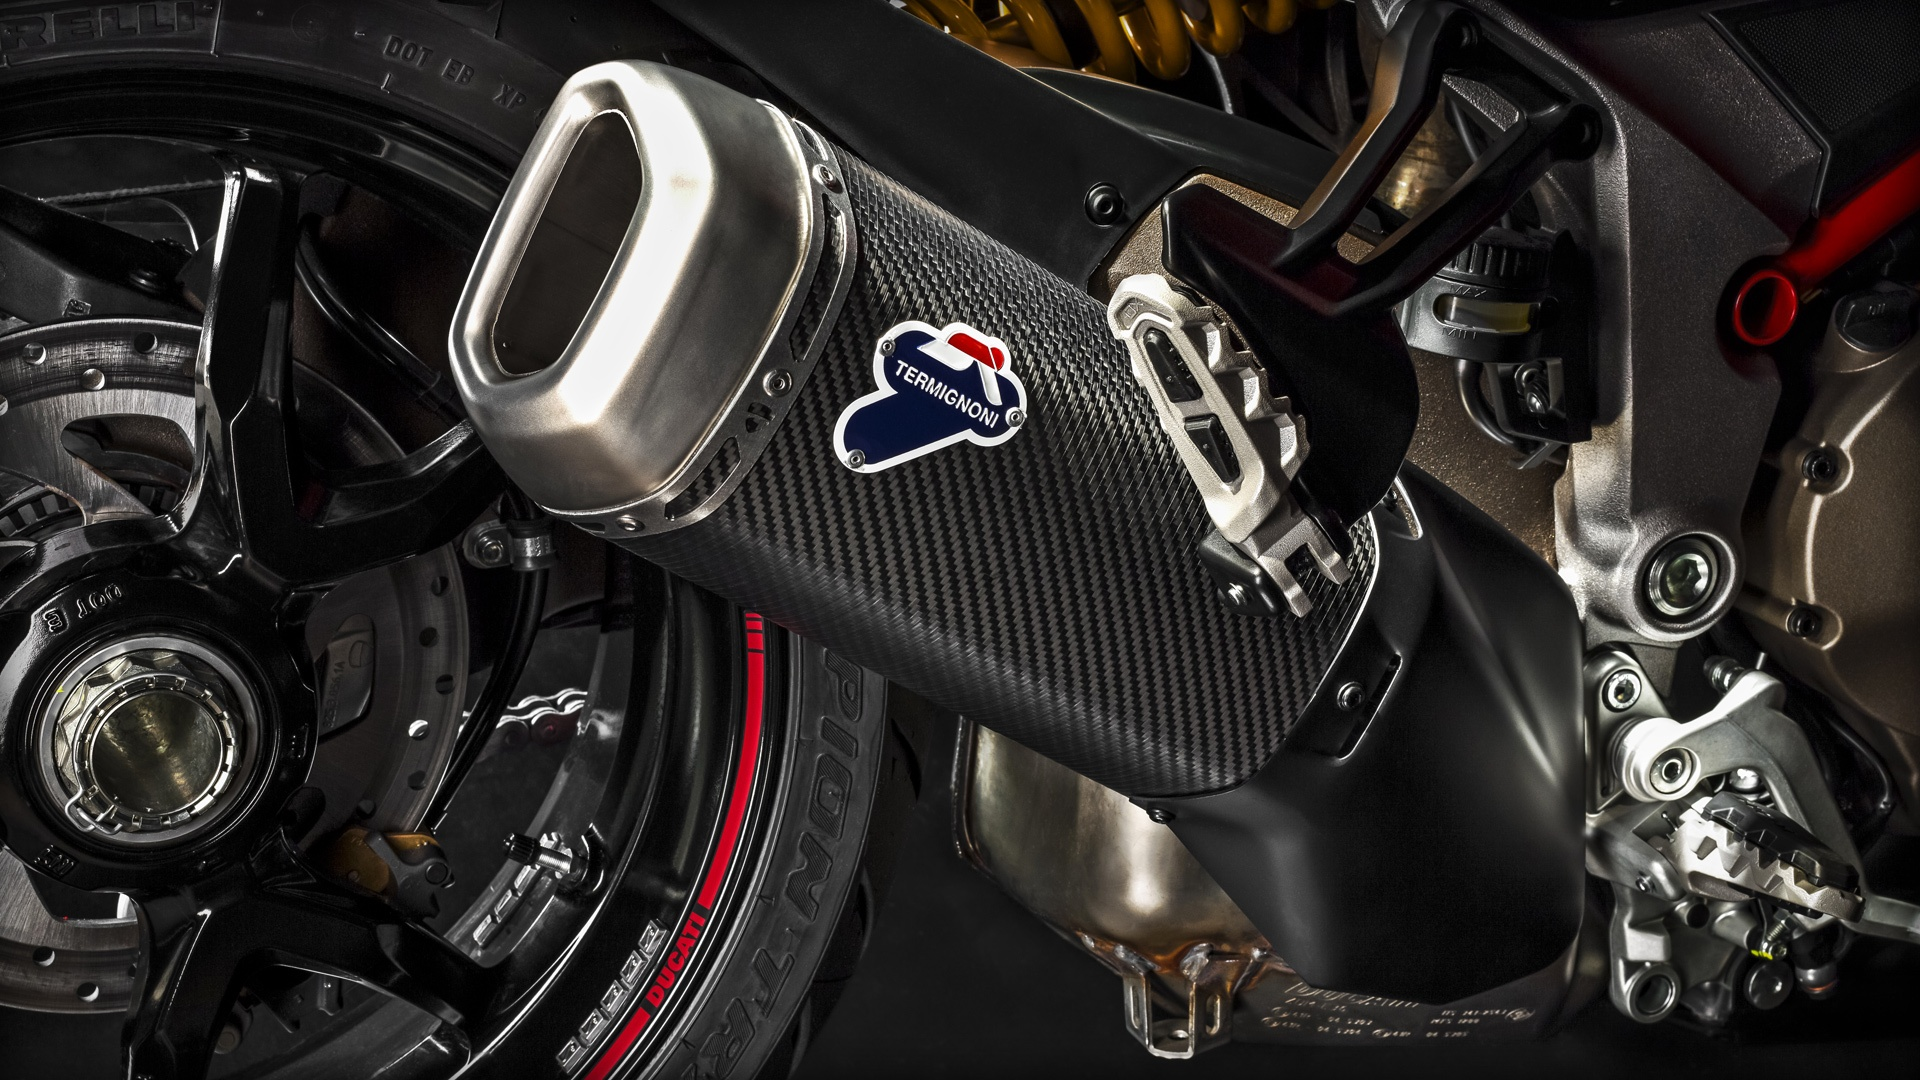 Ducati Multistrada Exhaust For Sale